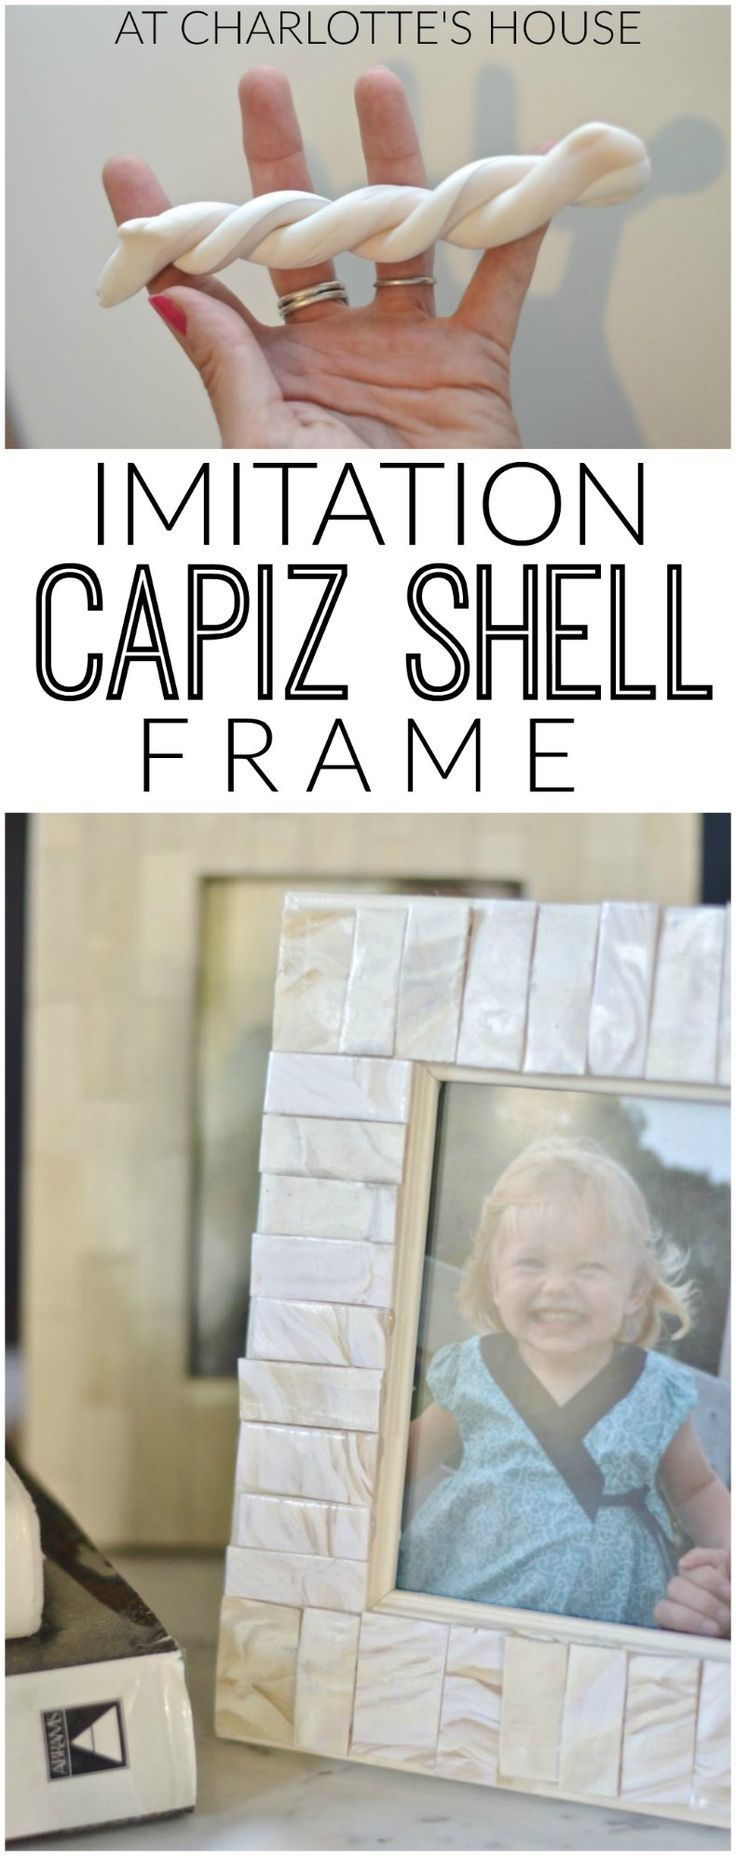 DIY imitation capiz shell frame